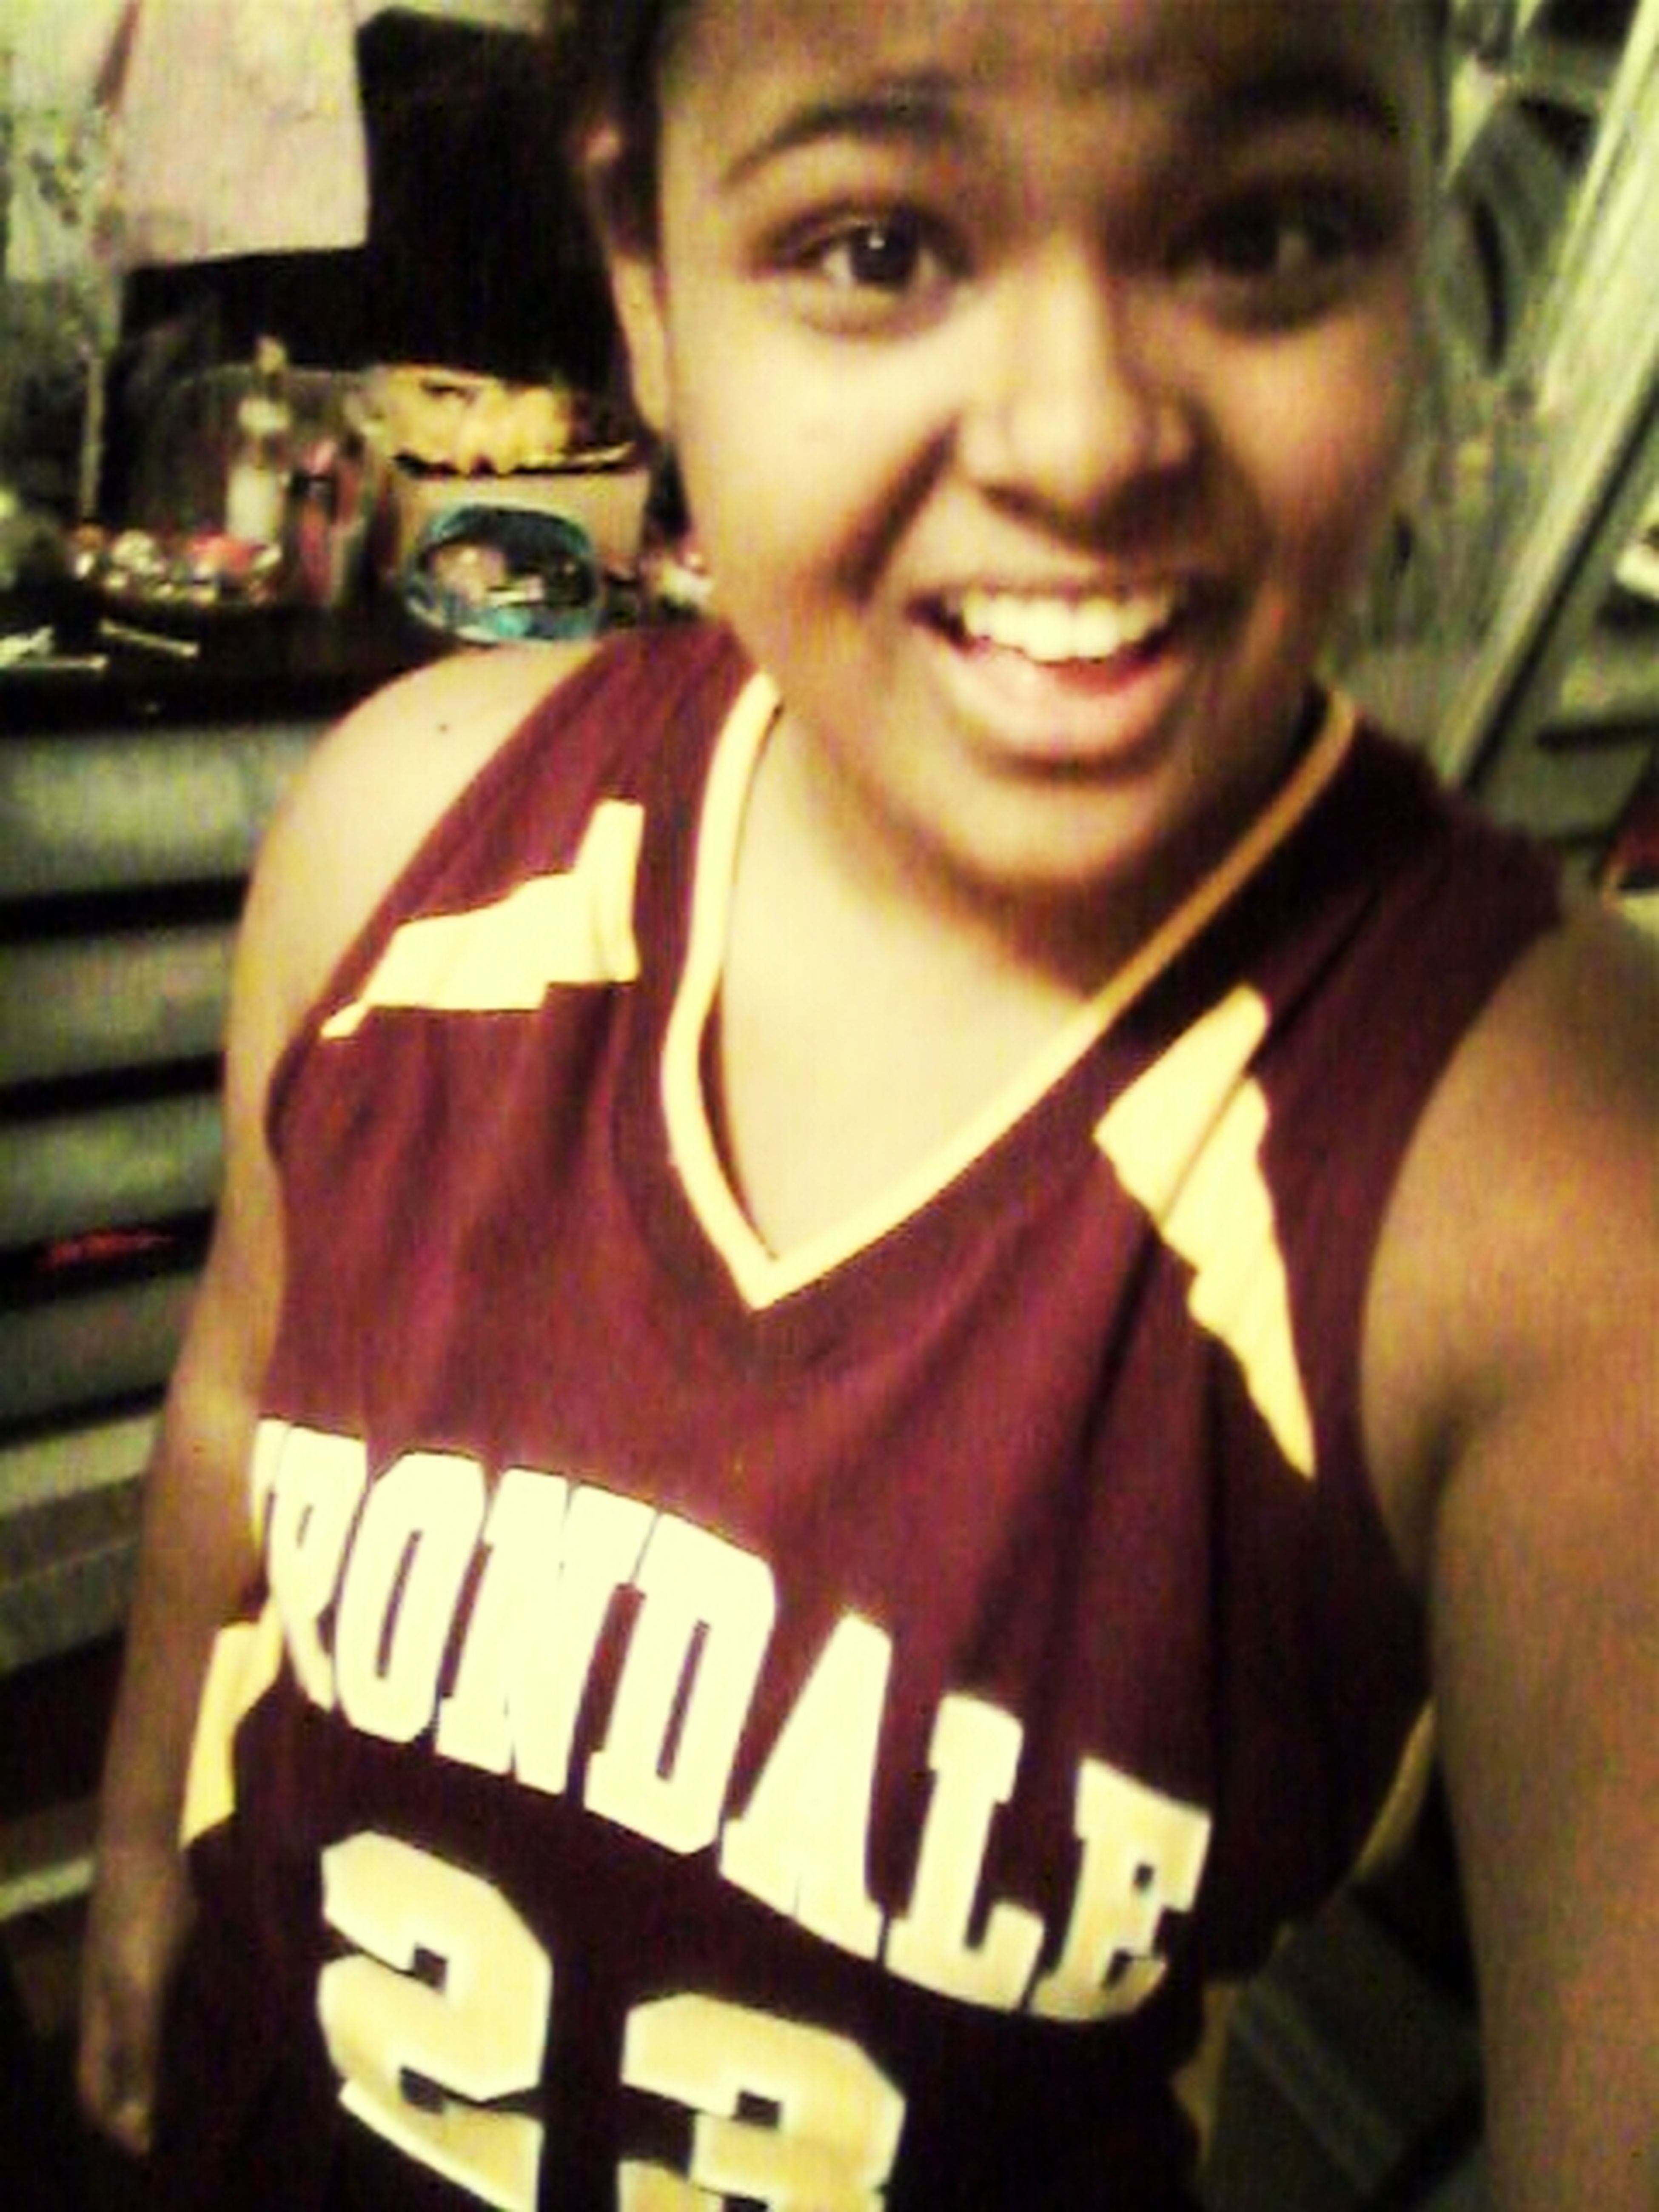 I do it for the Irondale nationnn (;